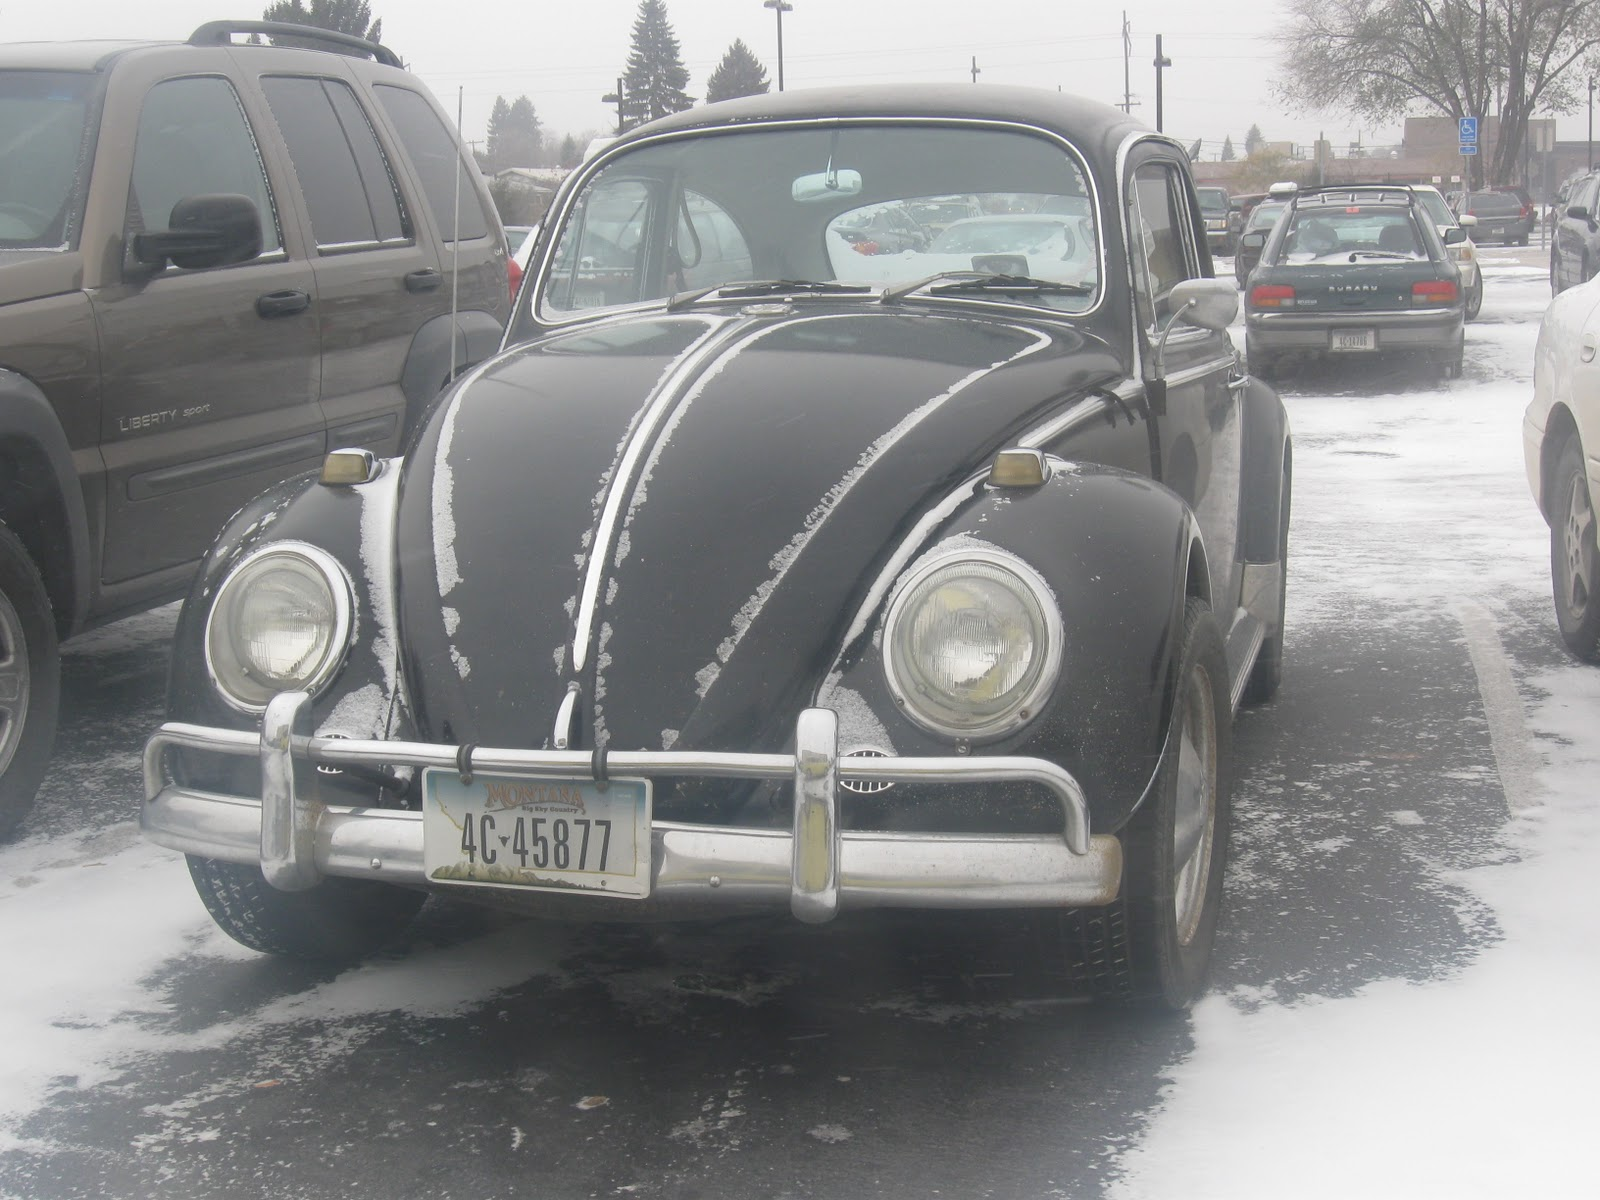 Another old Beetle (a '66 I